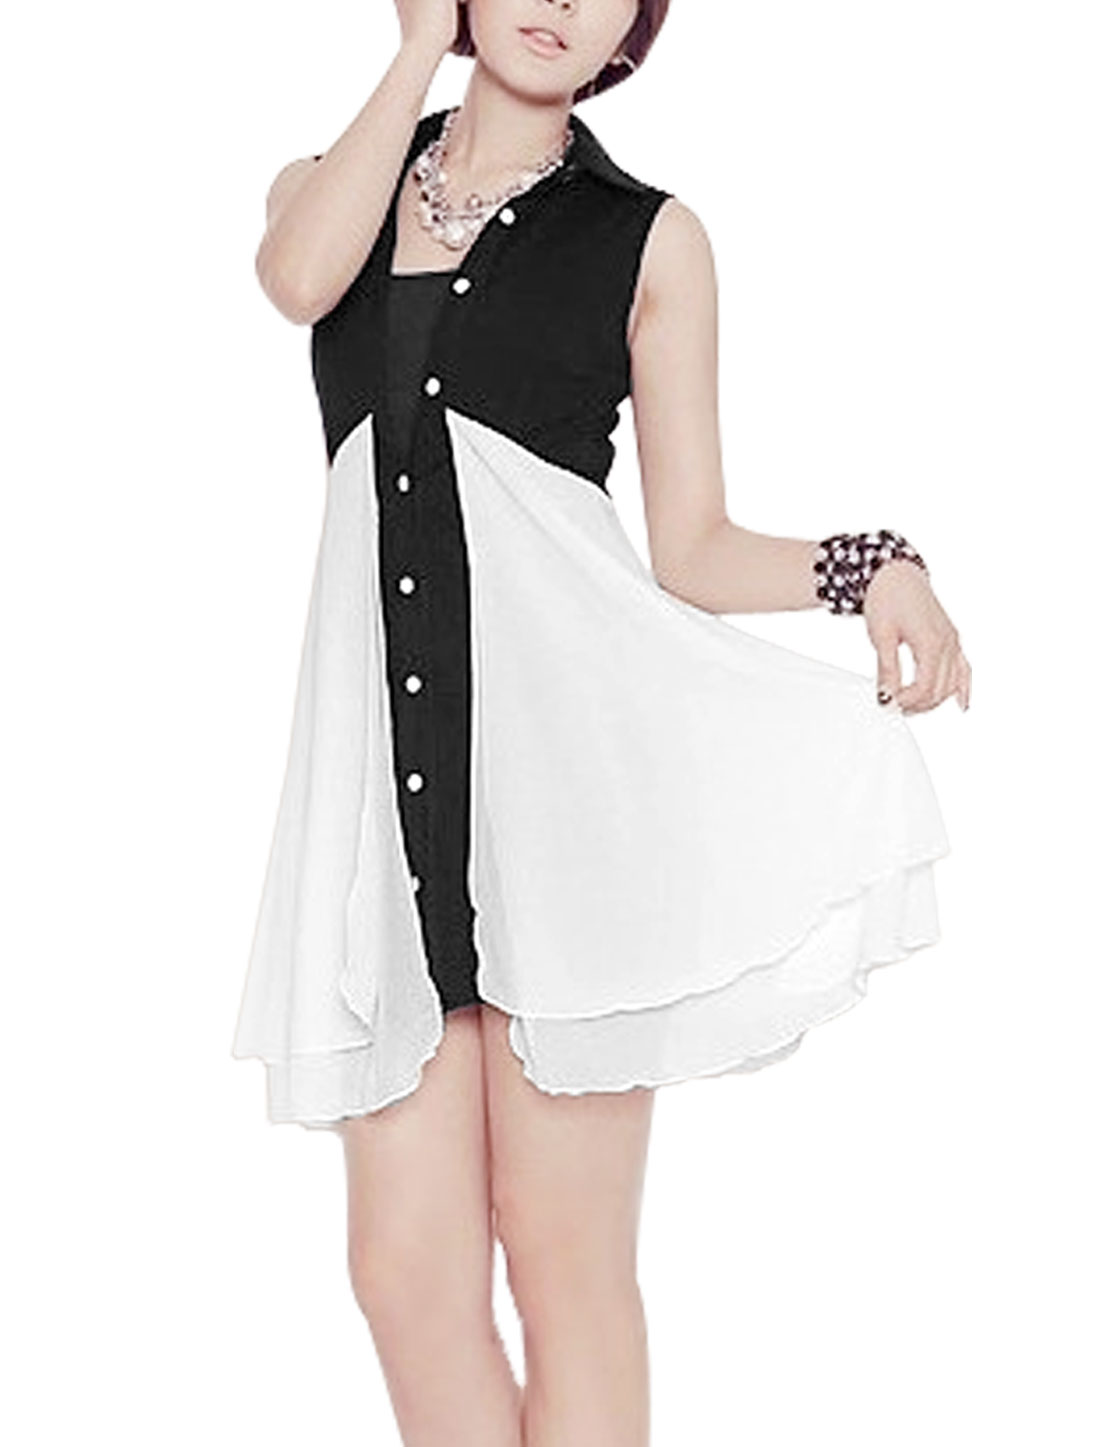 Lady Point Collar Sleeveless Color Block Chiffon Tunic Shirt Dress Black White M